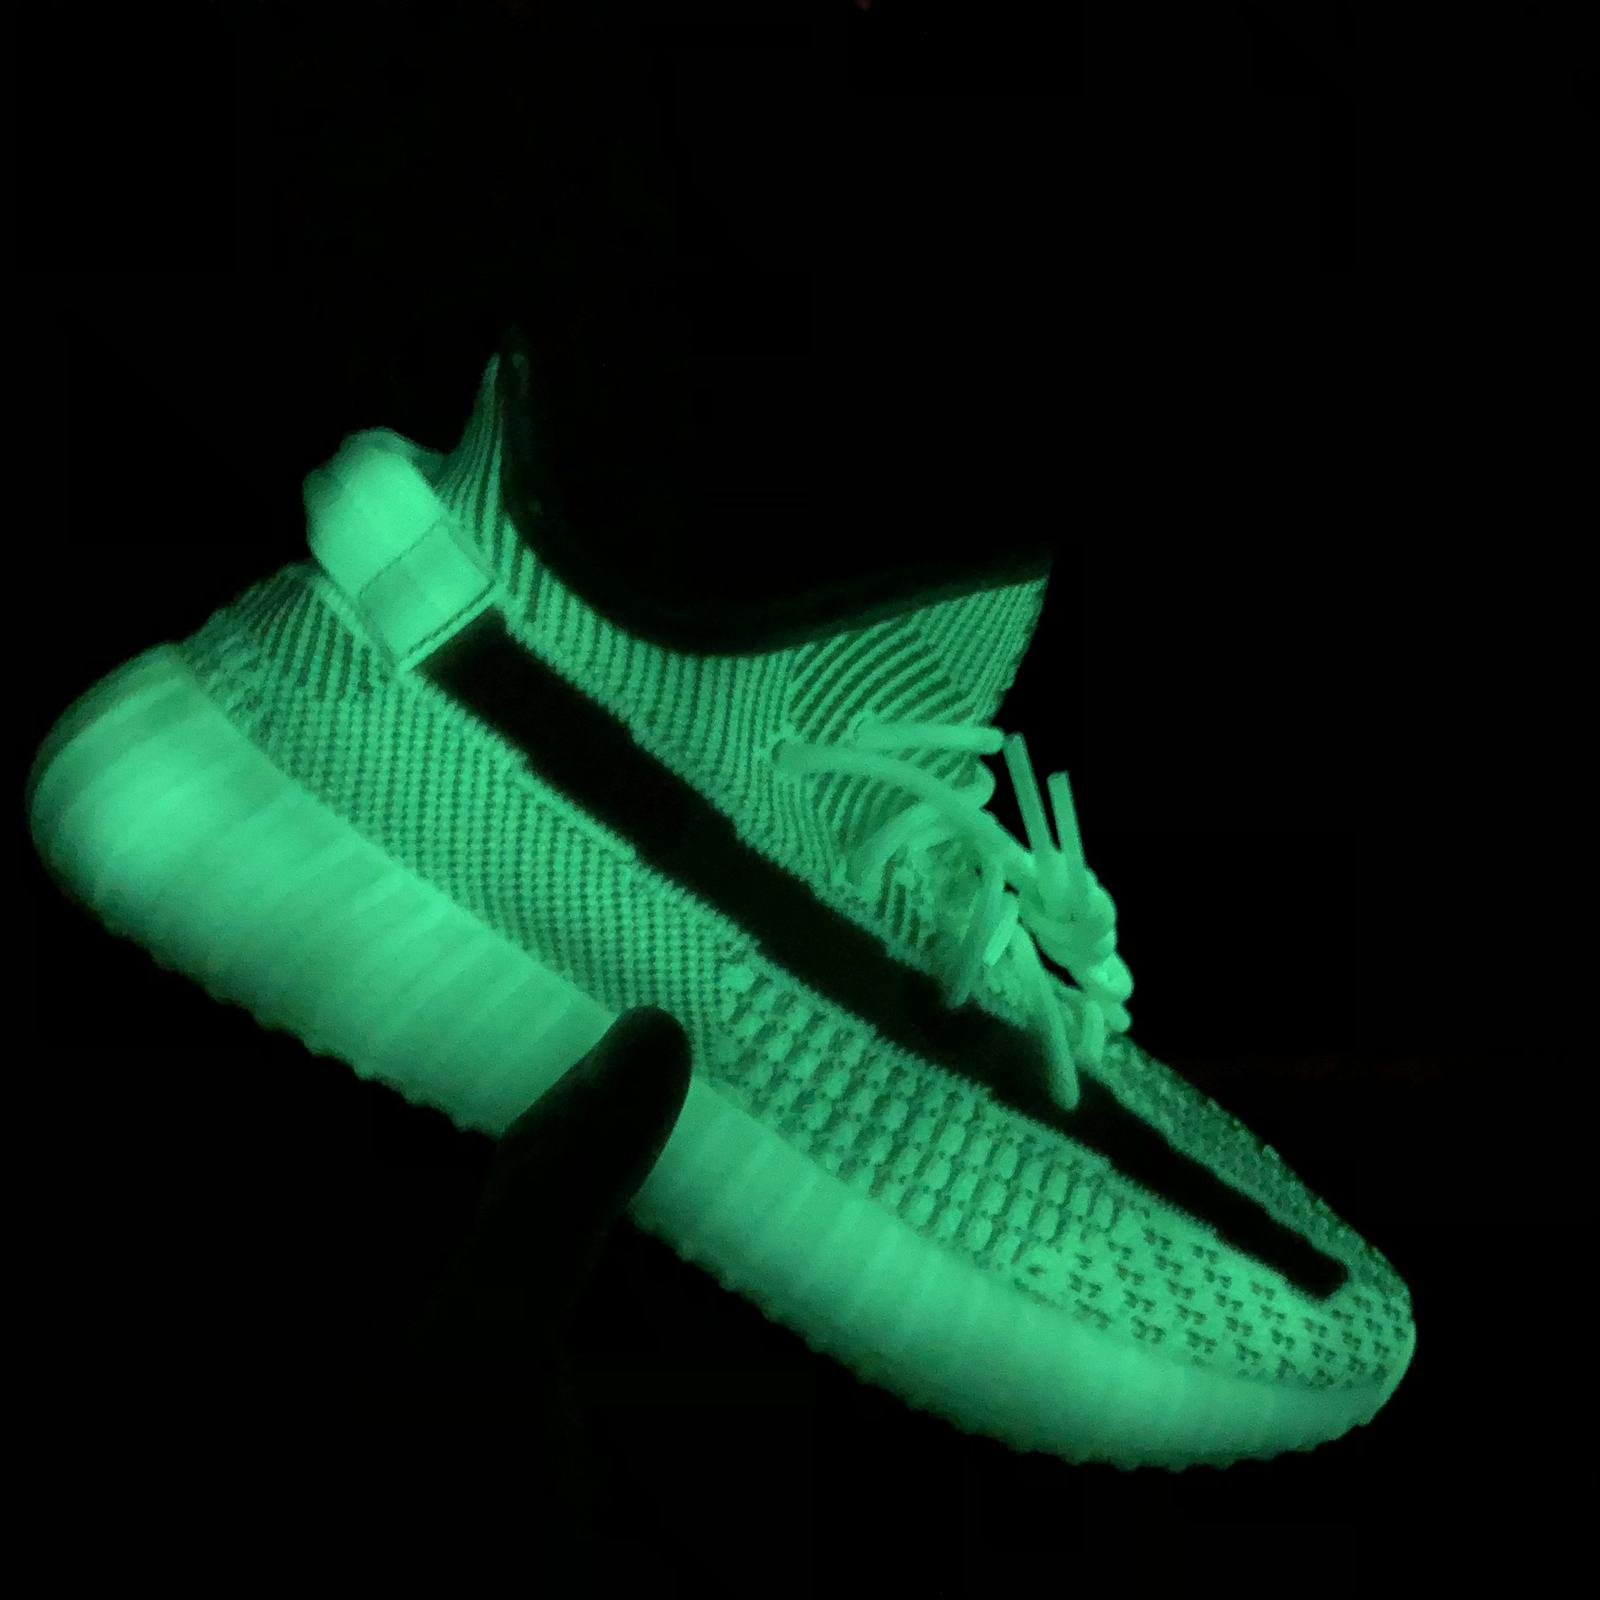 Alibaba.com / New Arrival Reflective Lundmark Antlia Synth Yeezy 350 V2 Glow Green Sports Running Shoes